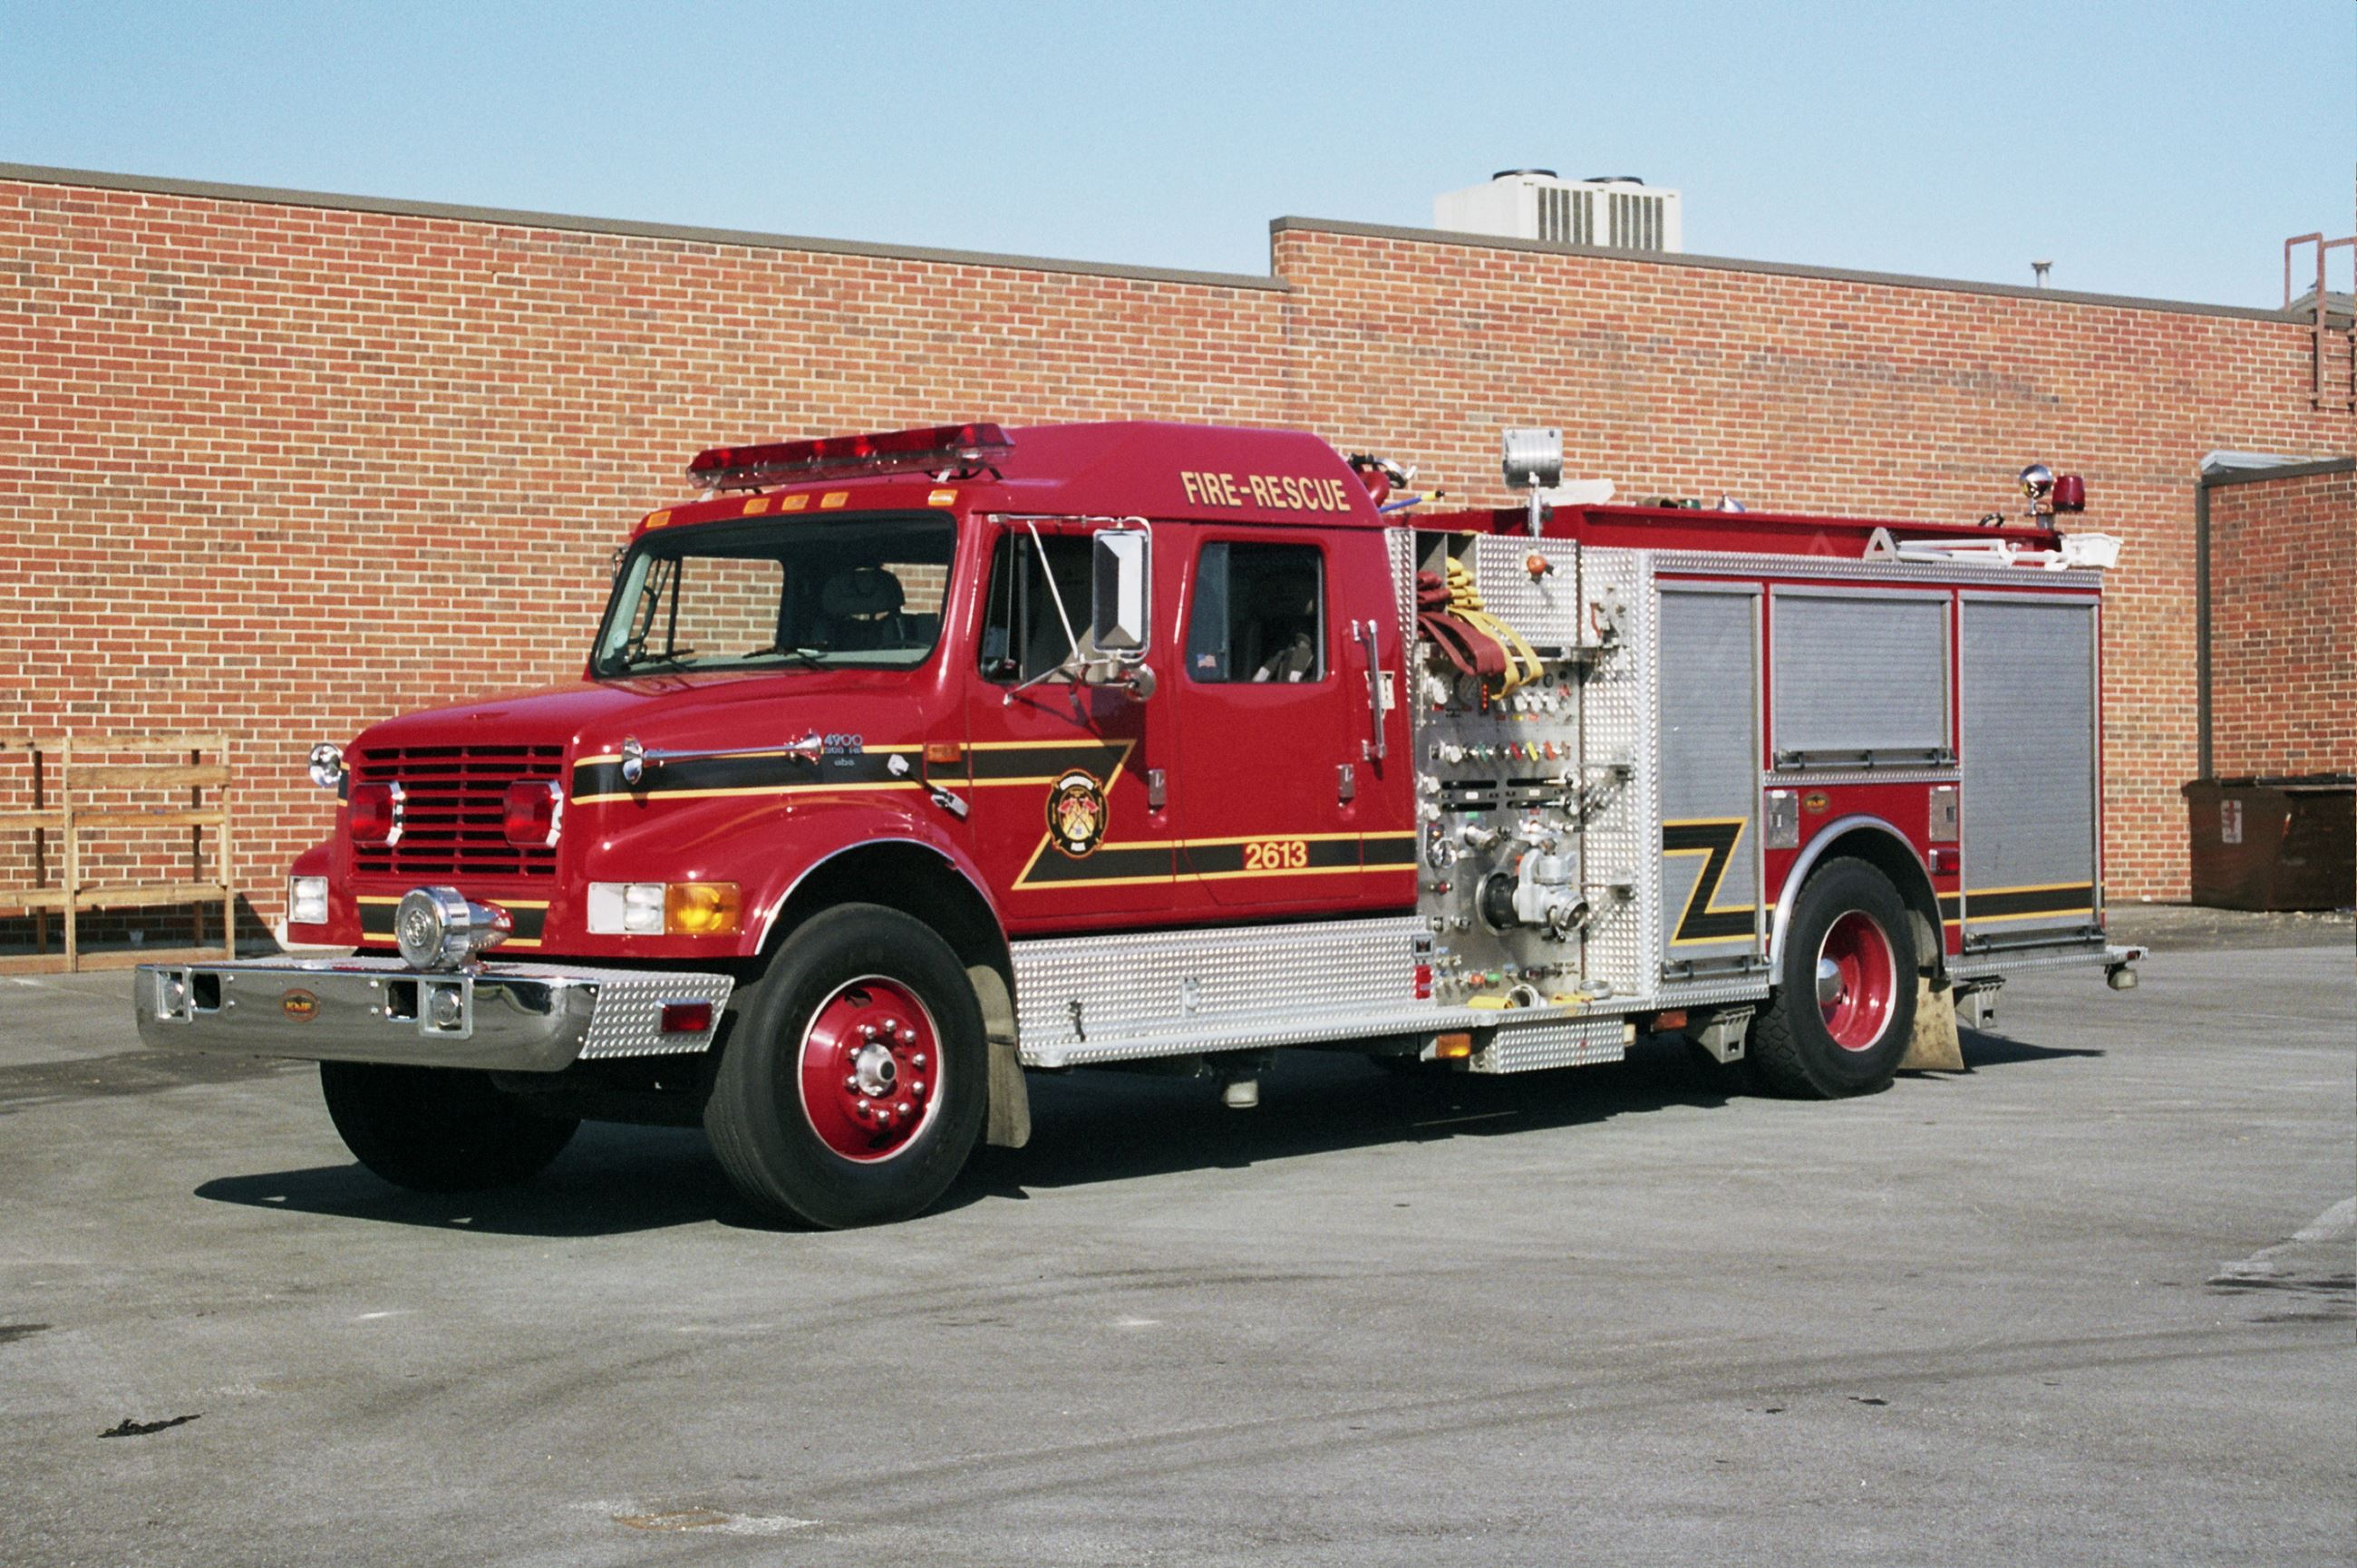 Engine 2613 full truck image